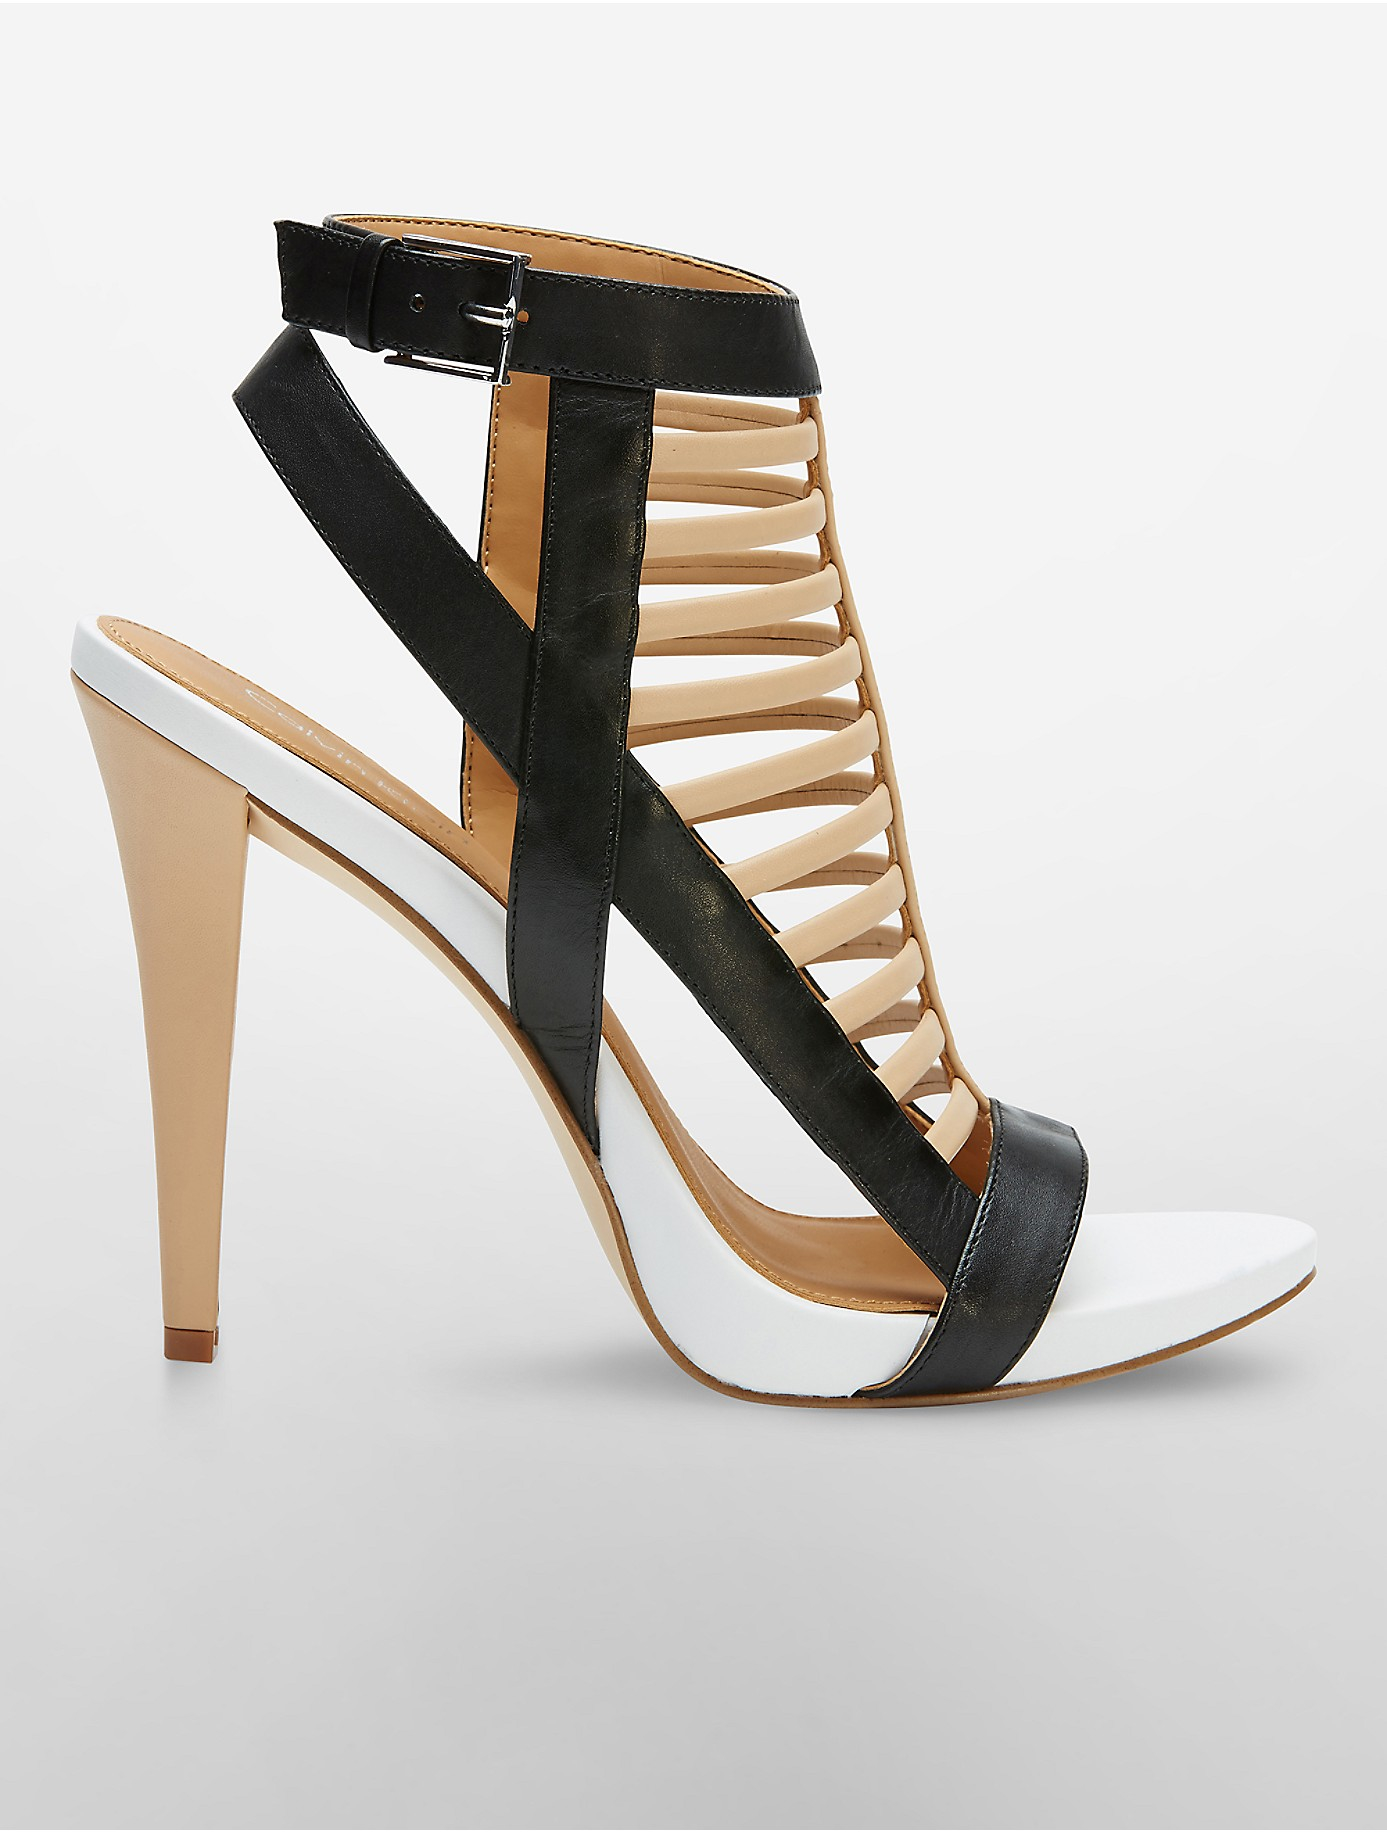 6a57f6aa638 Lyst - Calvin Klein White Label Nalo Cage Sandal in Natural